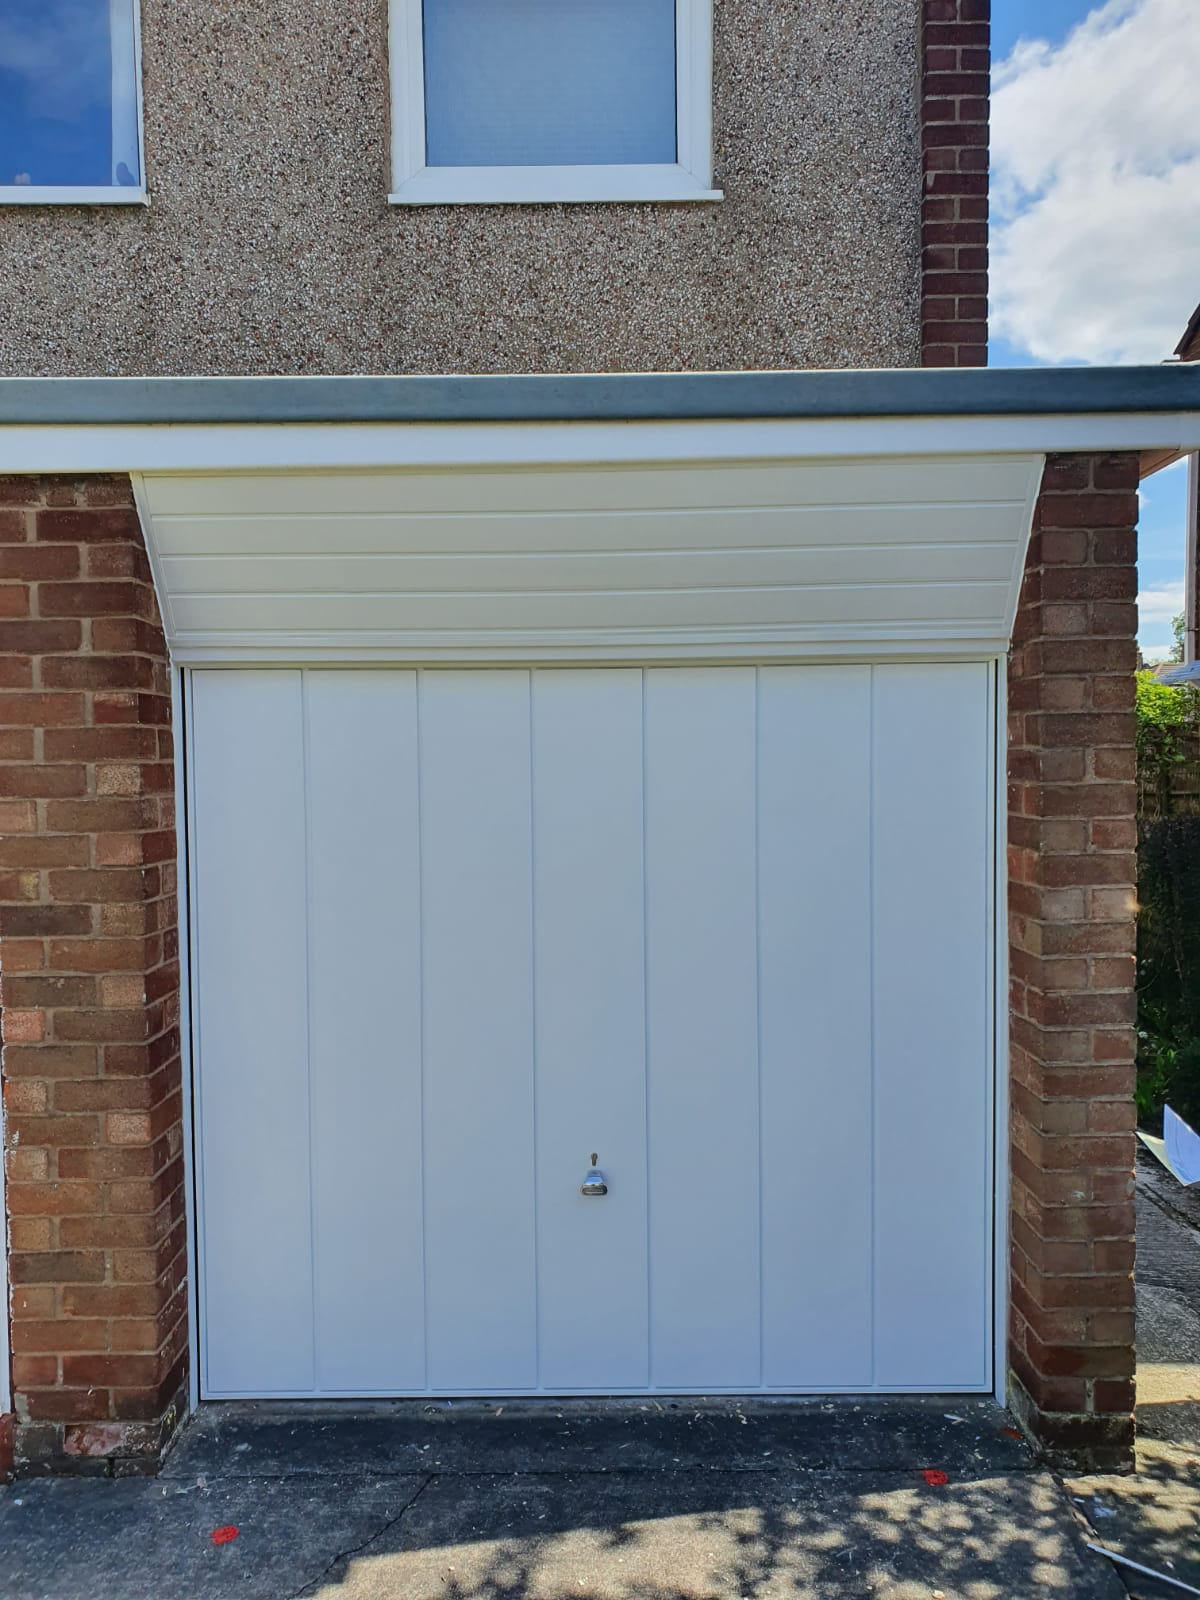 White Garador canopy framed up and over garage door in the Windsor vertical design with a matching frame. Door is manually operated via standard locking with a chrome handle to finish